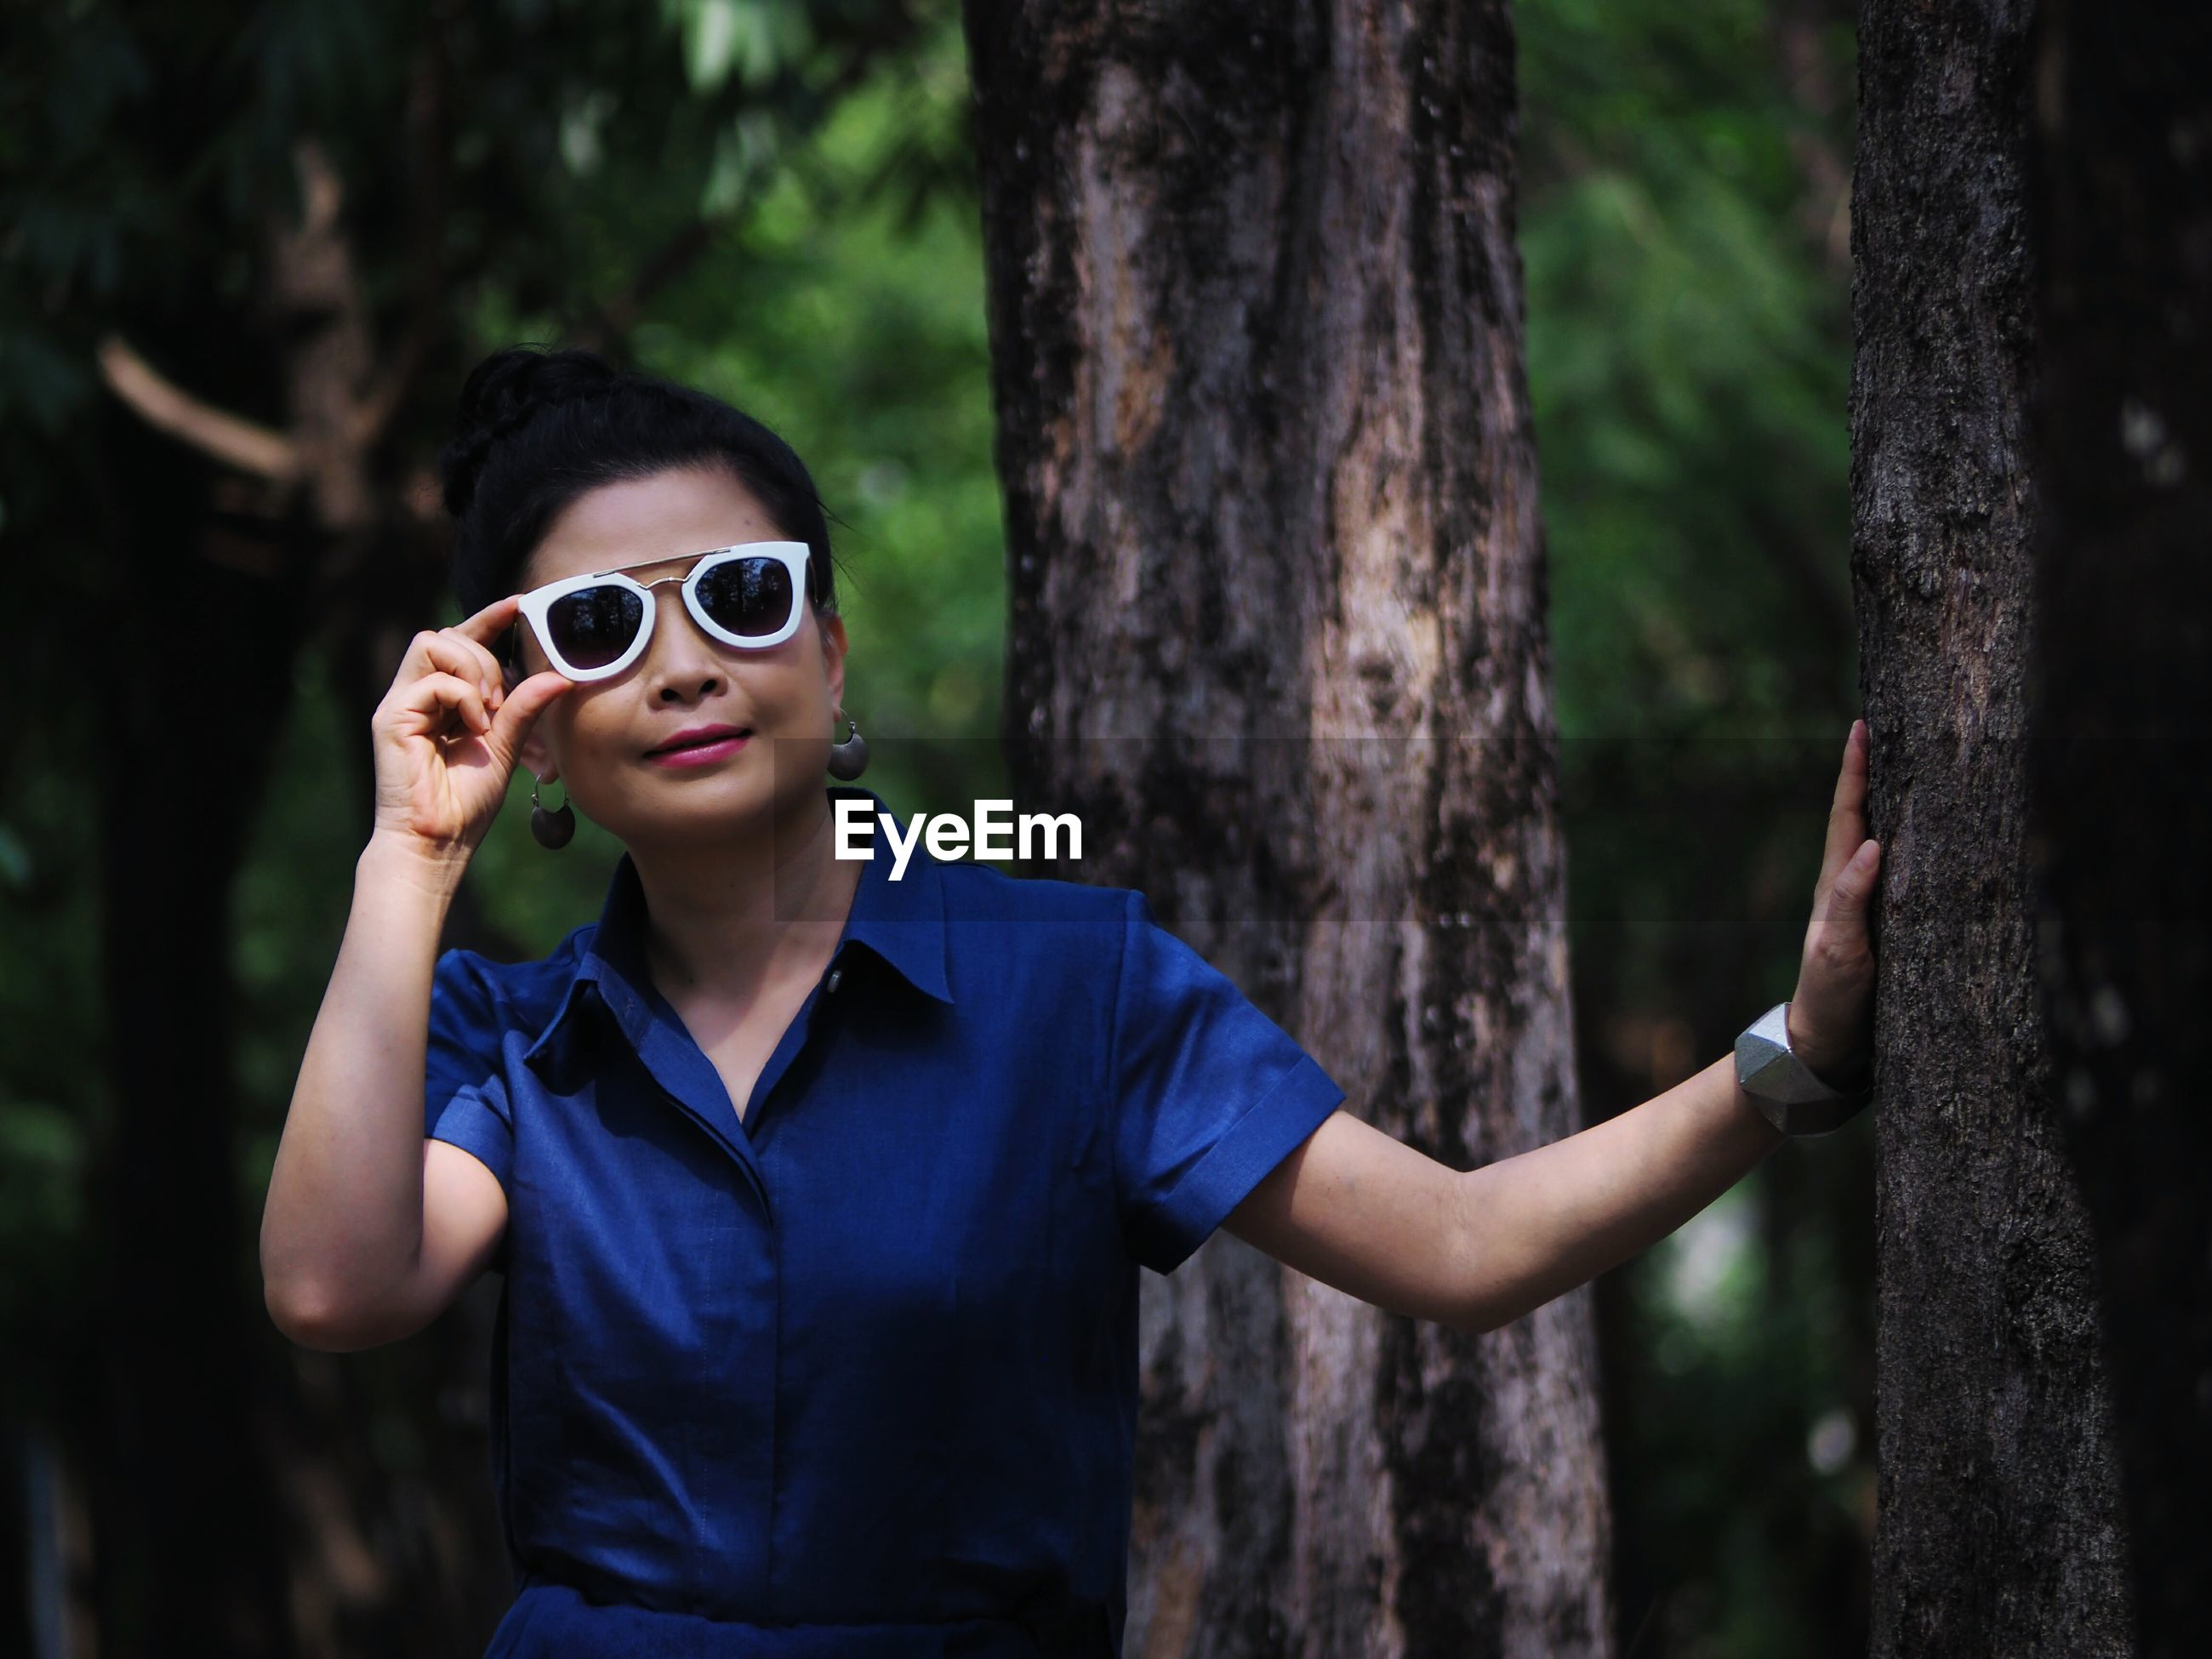 Portrait of woman in sunglasses standing by tree trunk